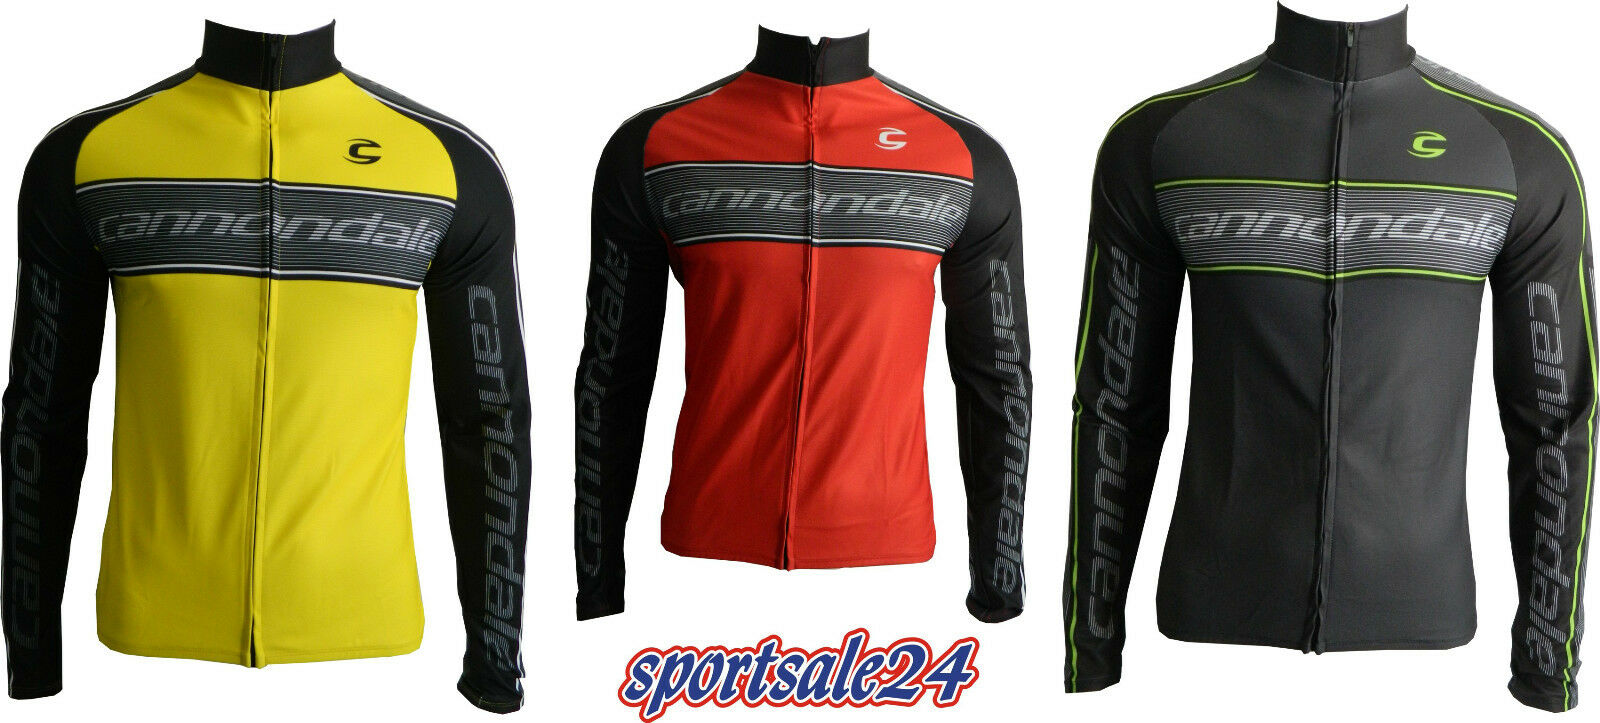 CANNONDALE perforuomoce 2 Pro lungo Sleeve JerseyINVERNOMAGLIA  5m122nuovo